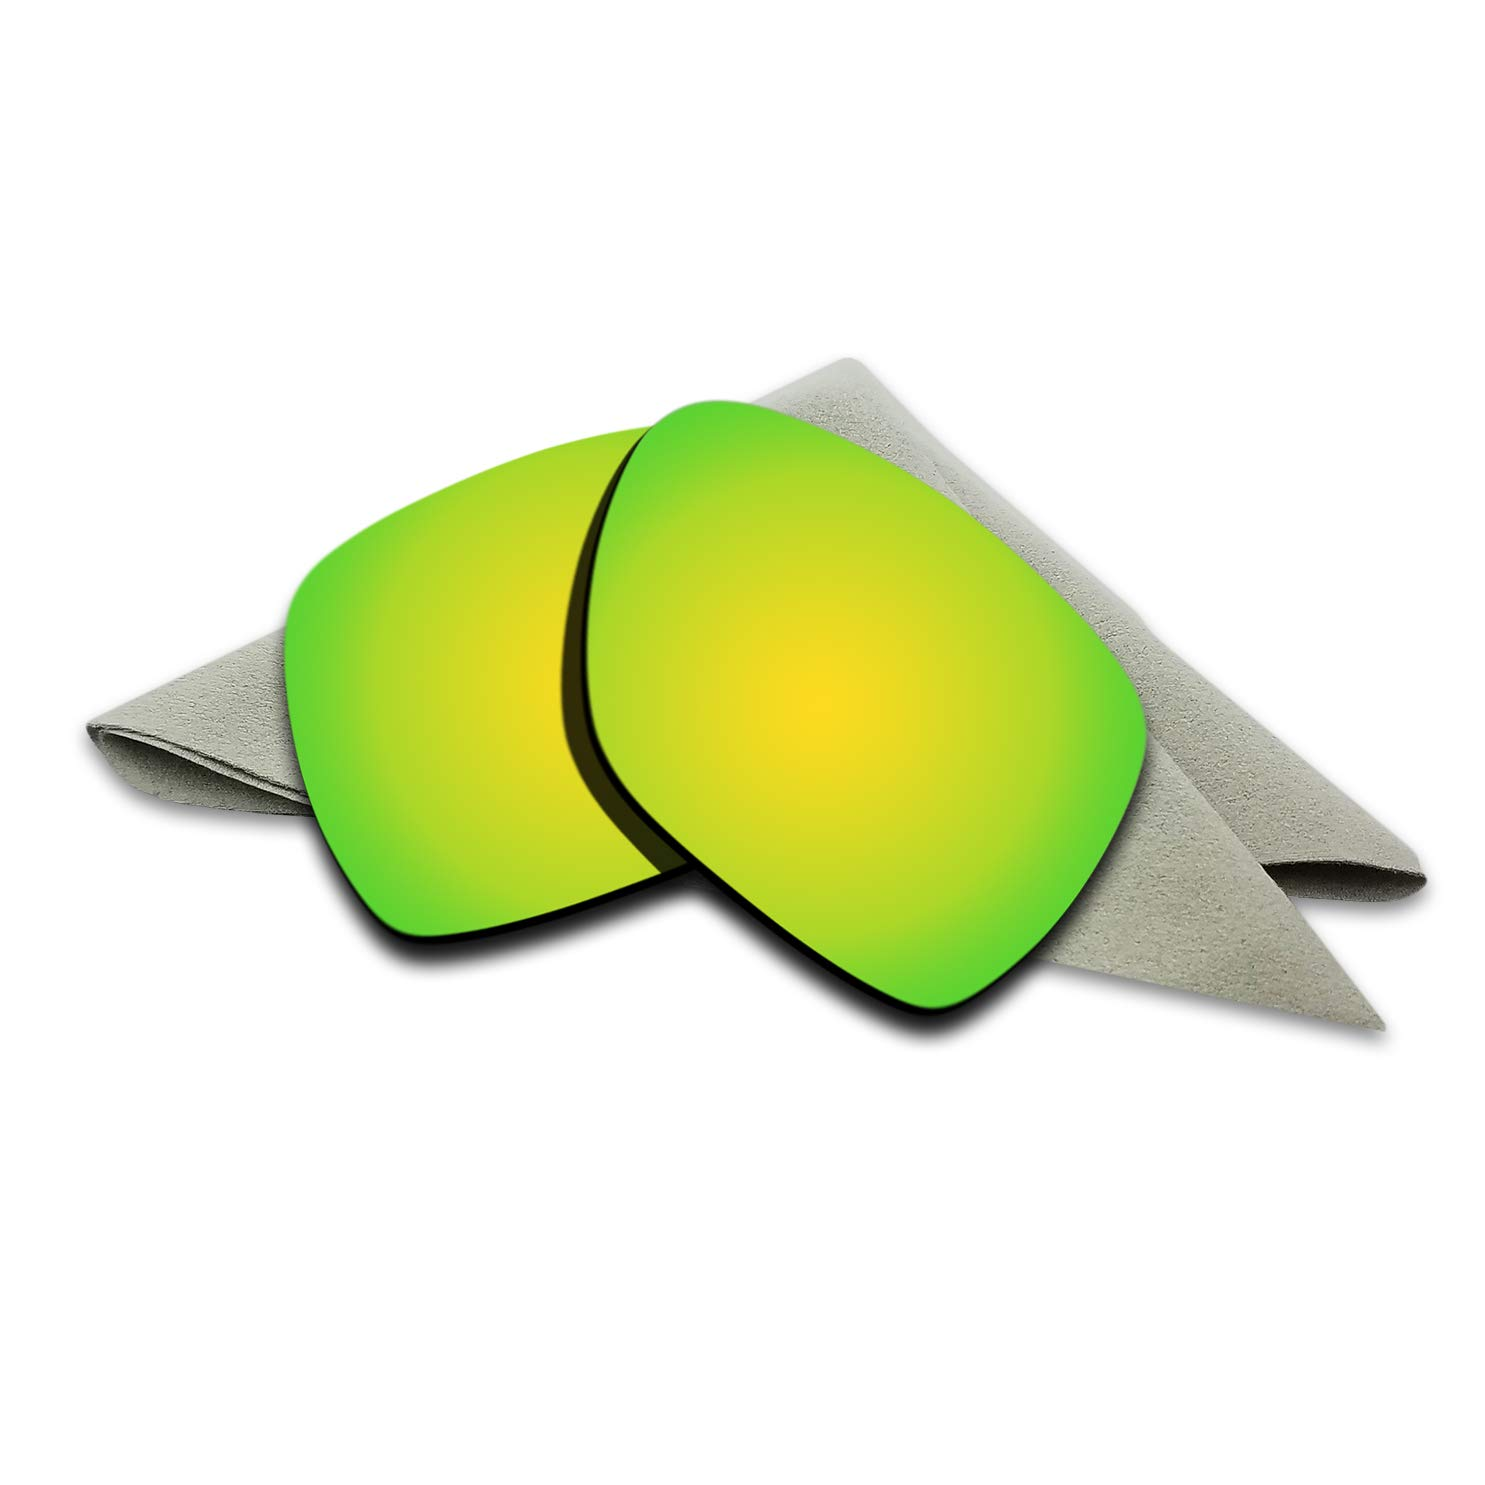 f514bb77b5 Amazon.com  24K Golden Mirrored Polarized Lenses Replacement for Oakley  Deviation Sunglasses  Clothing